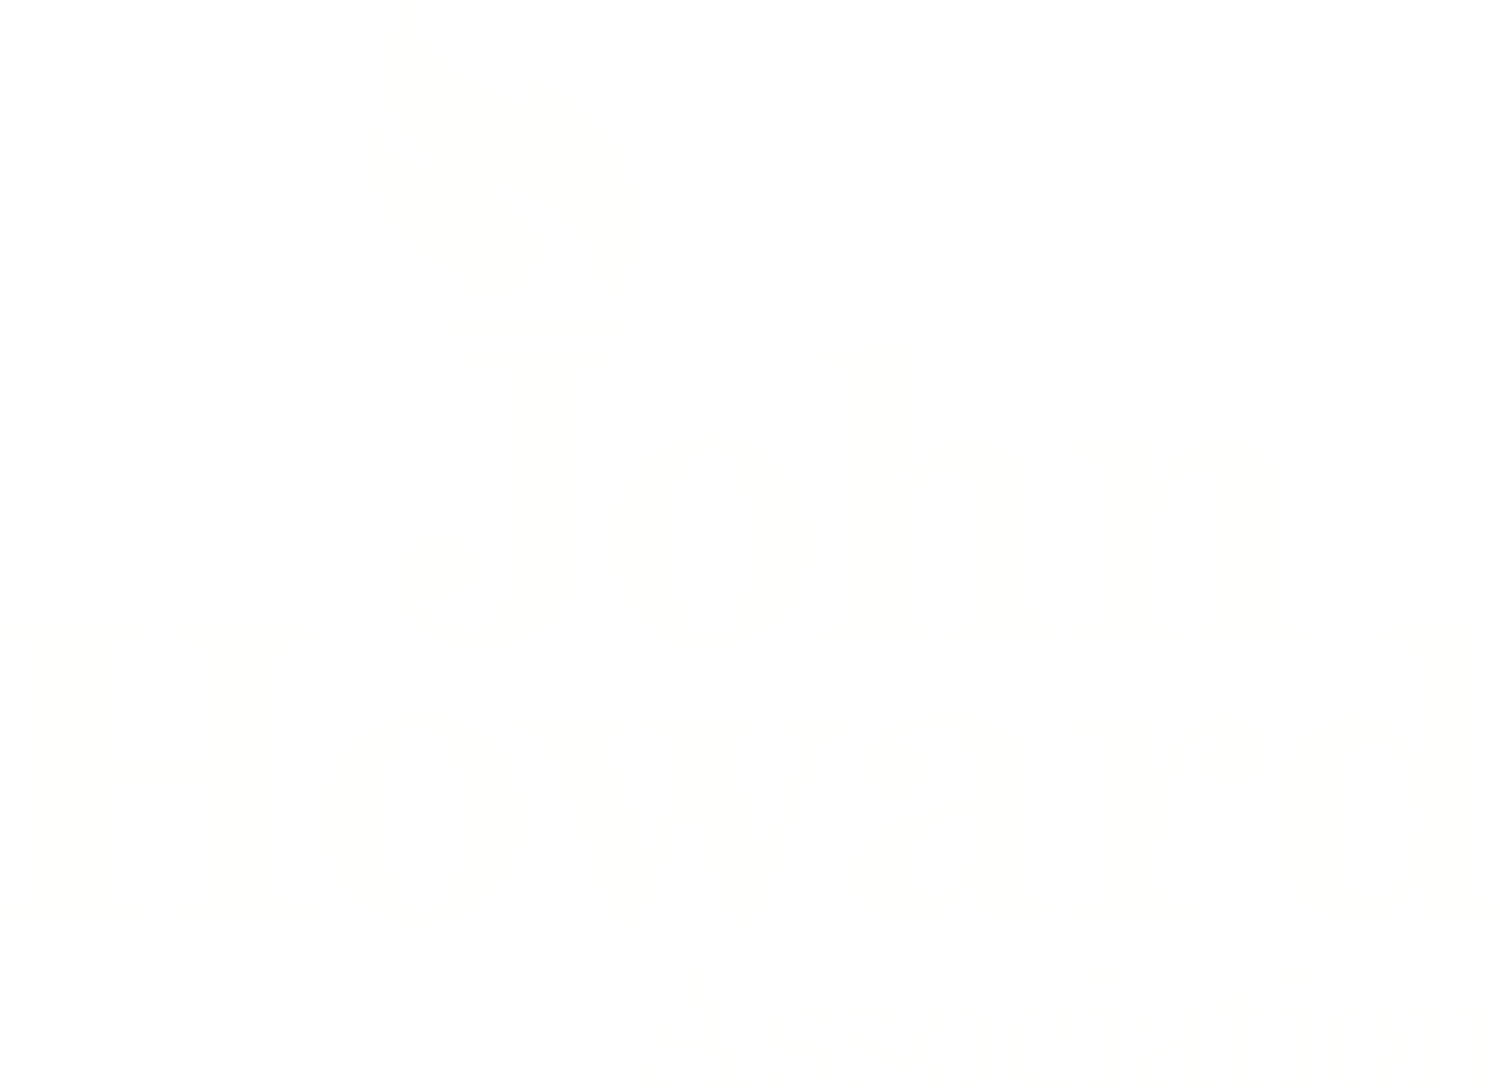 John Howard Association of Illinois